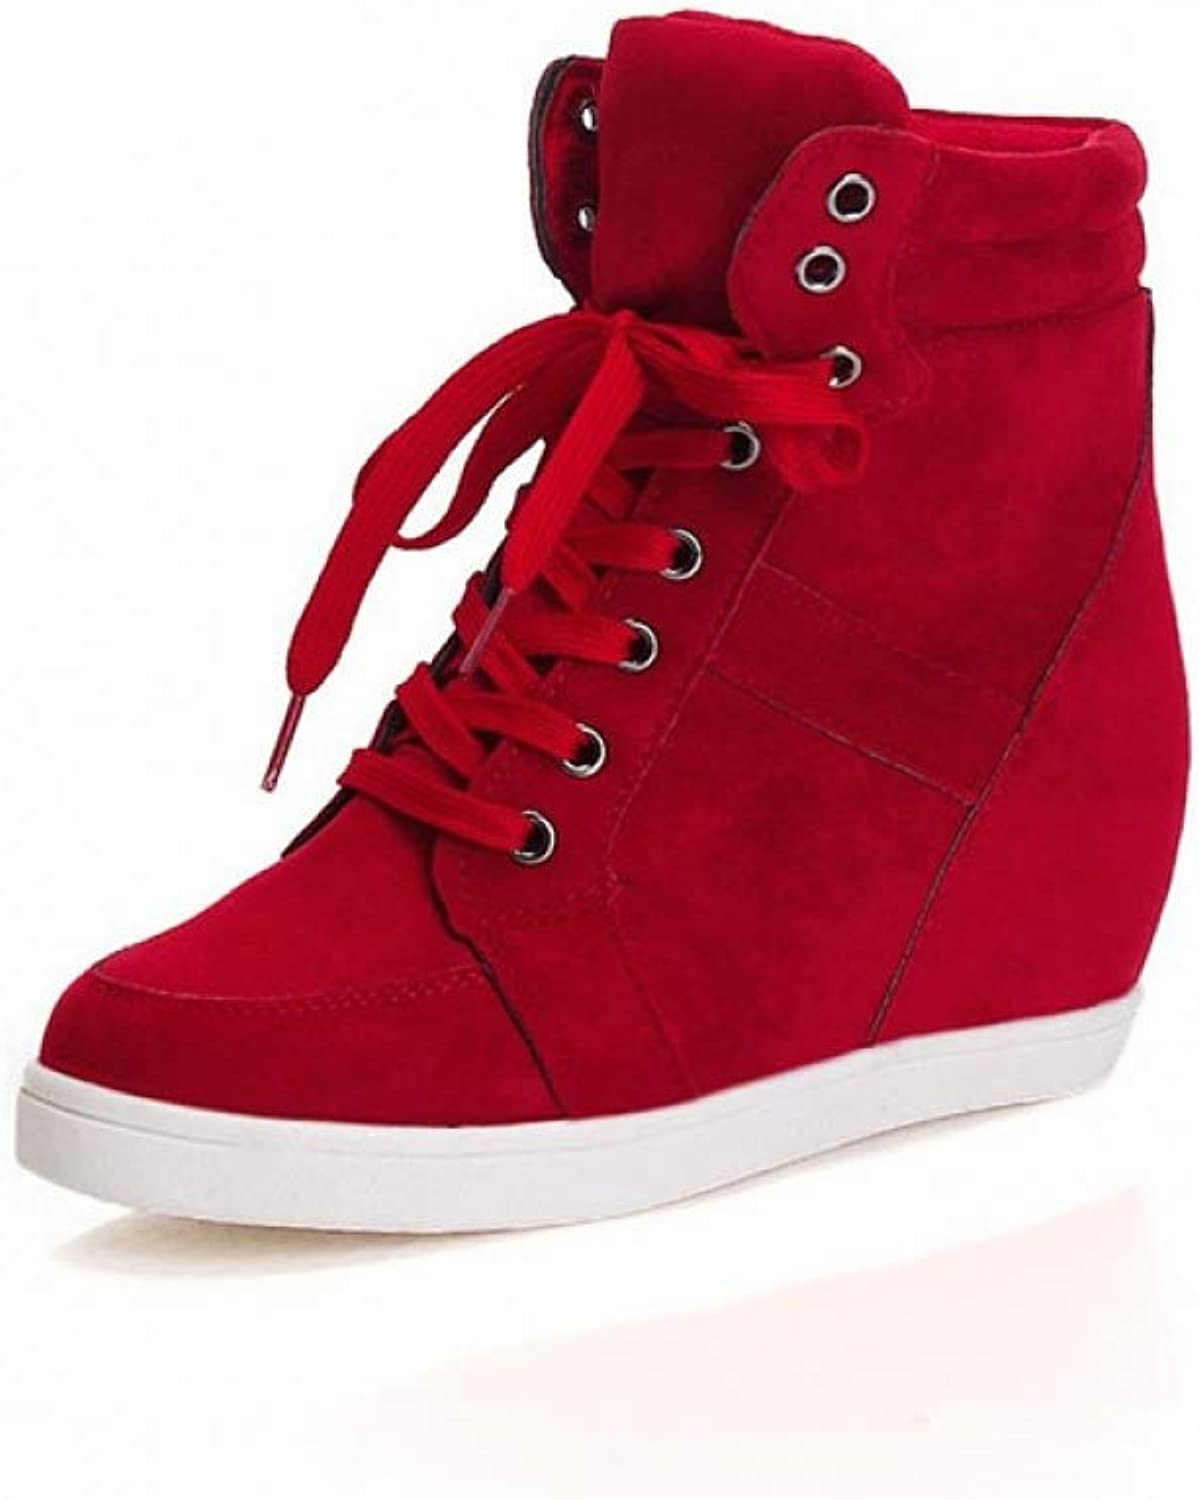 T-JULY Height Increasing Women Designers Platform Sneakers Women shoes Wedges shoes for Women Luxury shoes